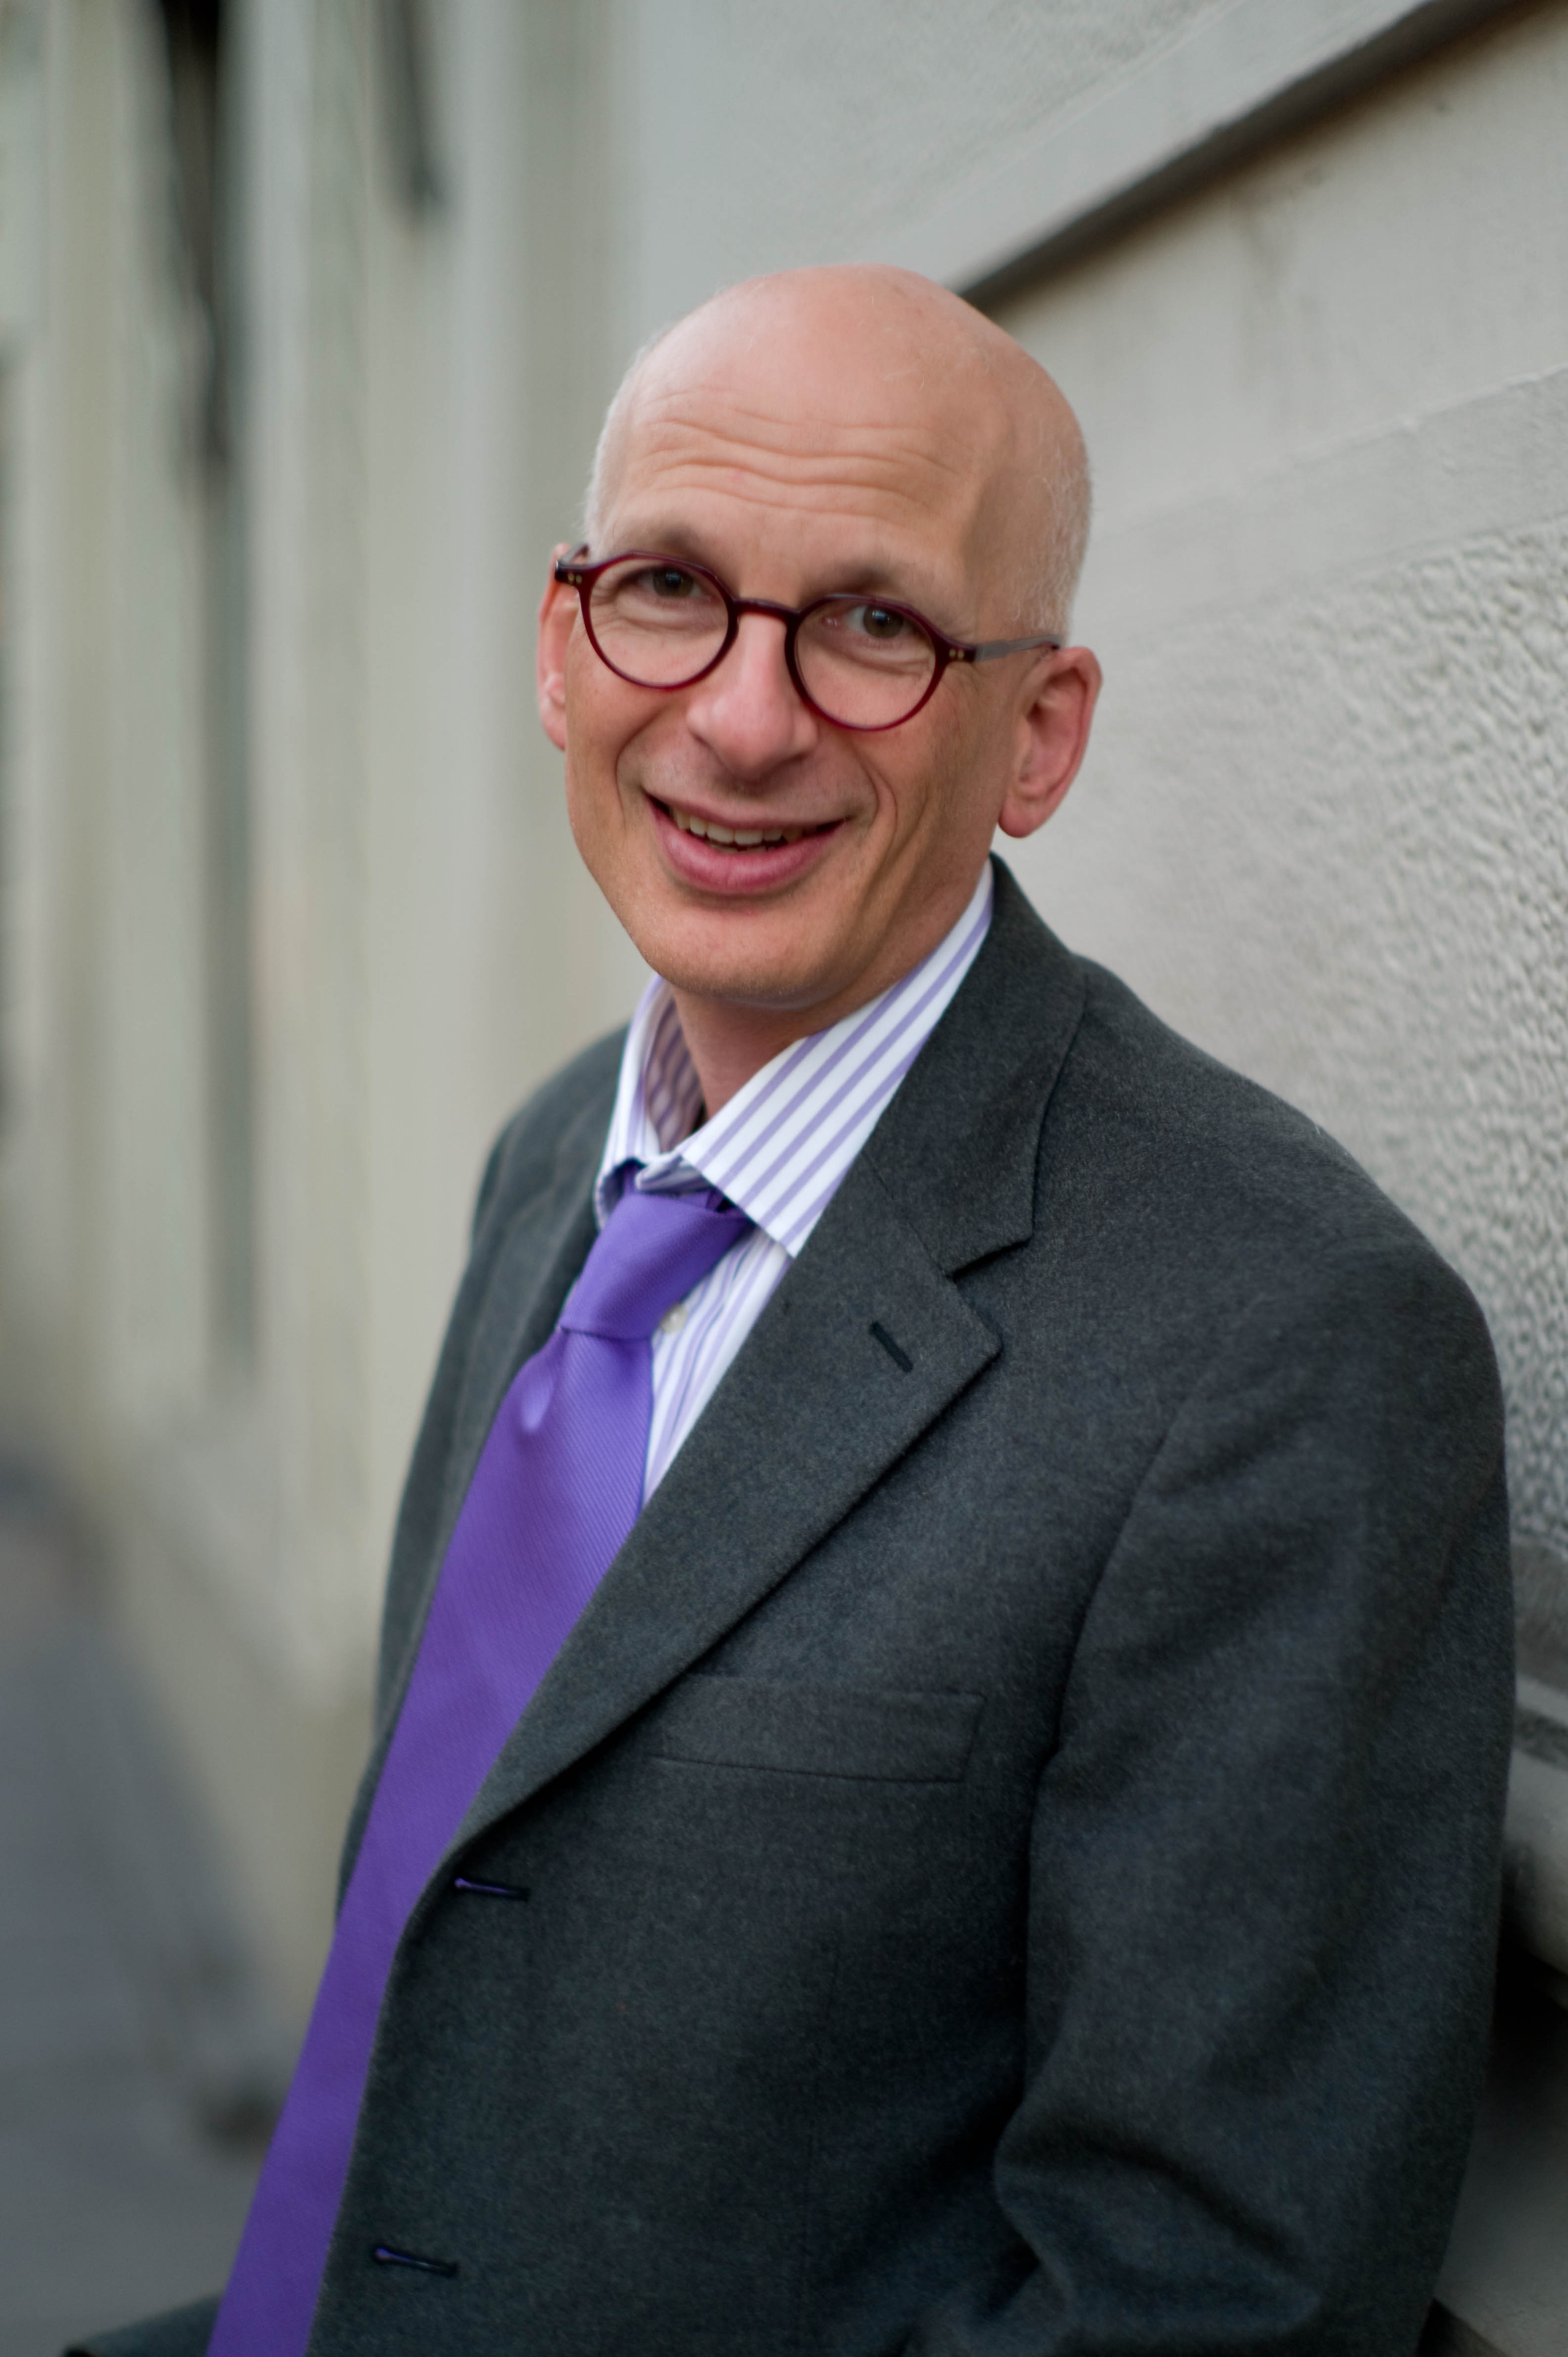 10 things Seth Godin taught me about social media marketing